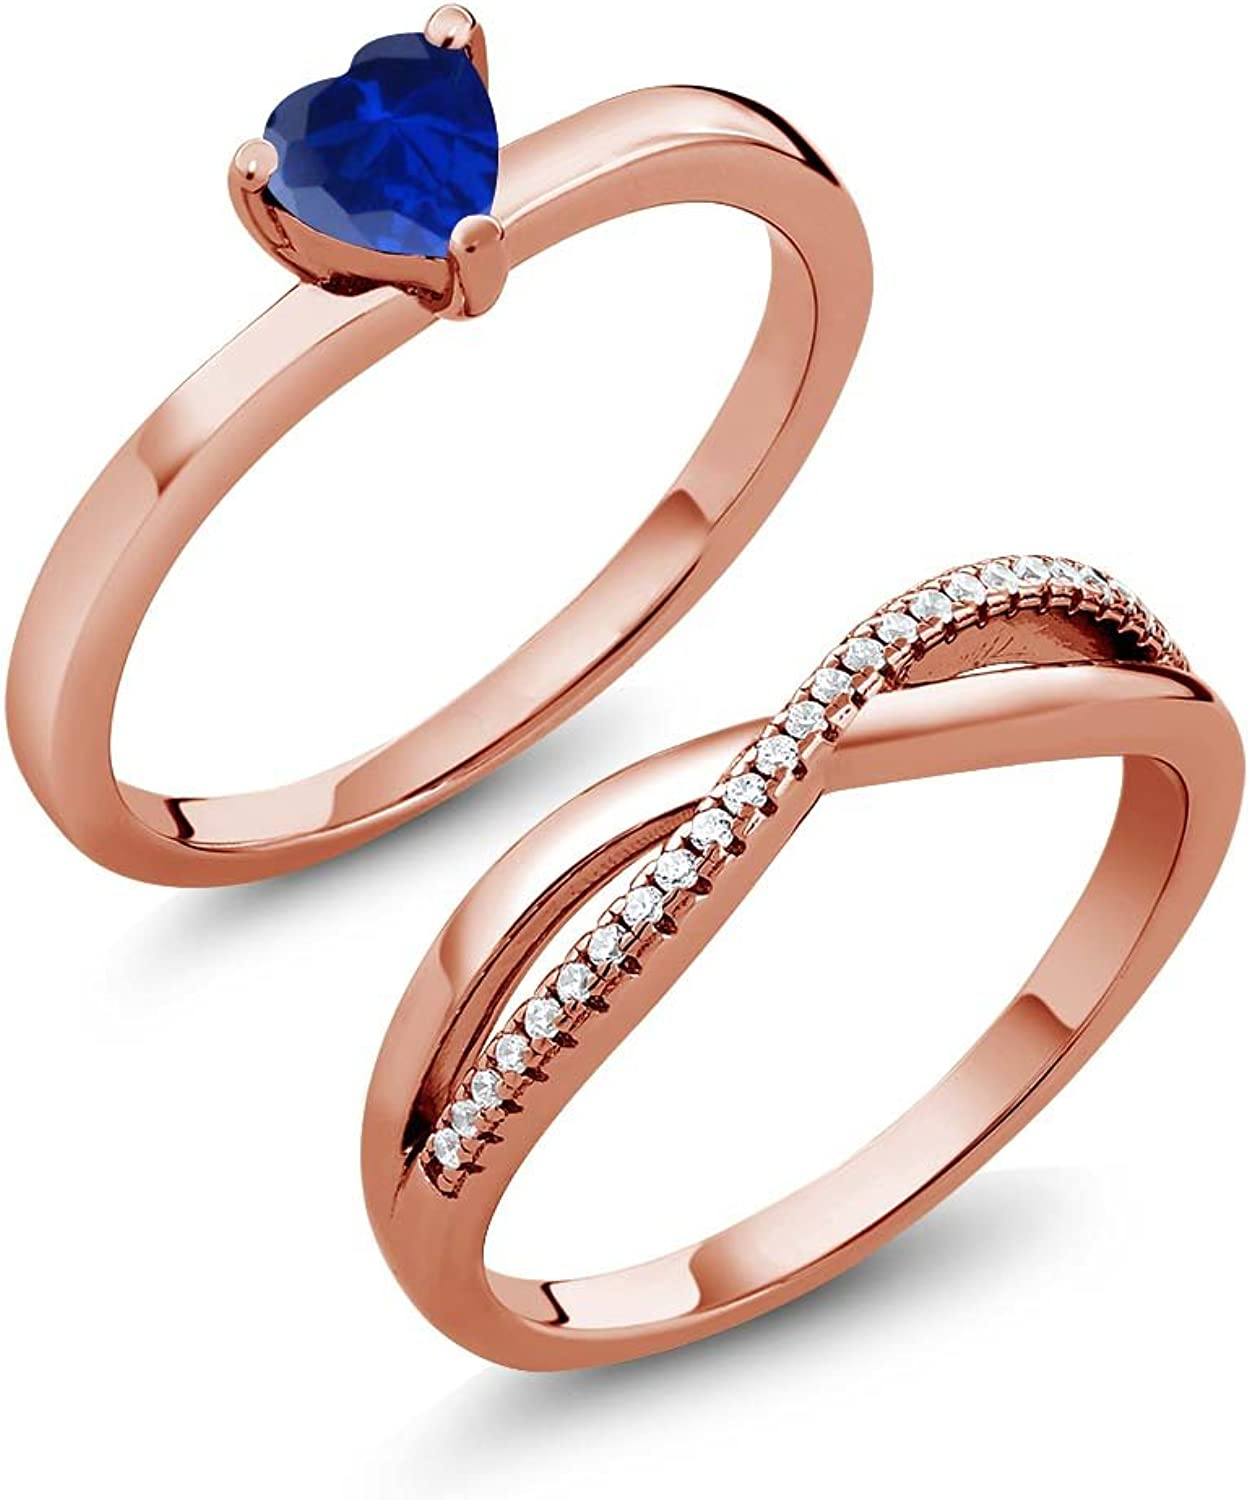 0.91 Ct bluee Simulated Sapphire 18K pink gold Plated Silver Engagement Wedding Ring Set